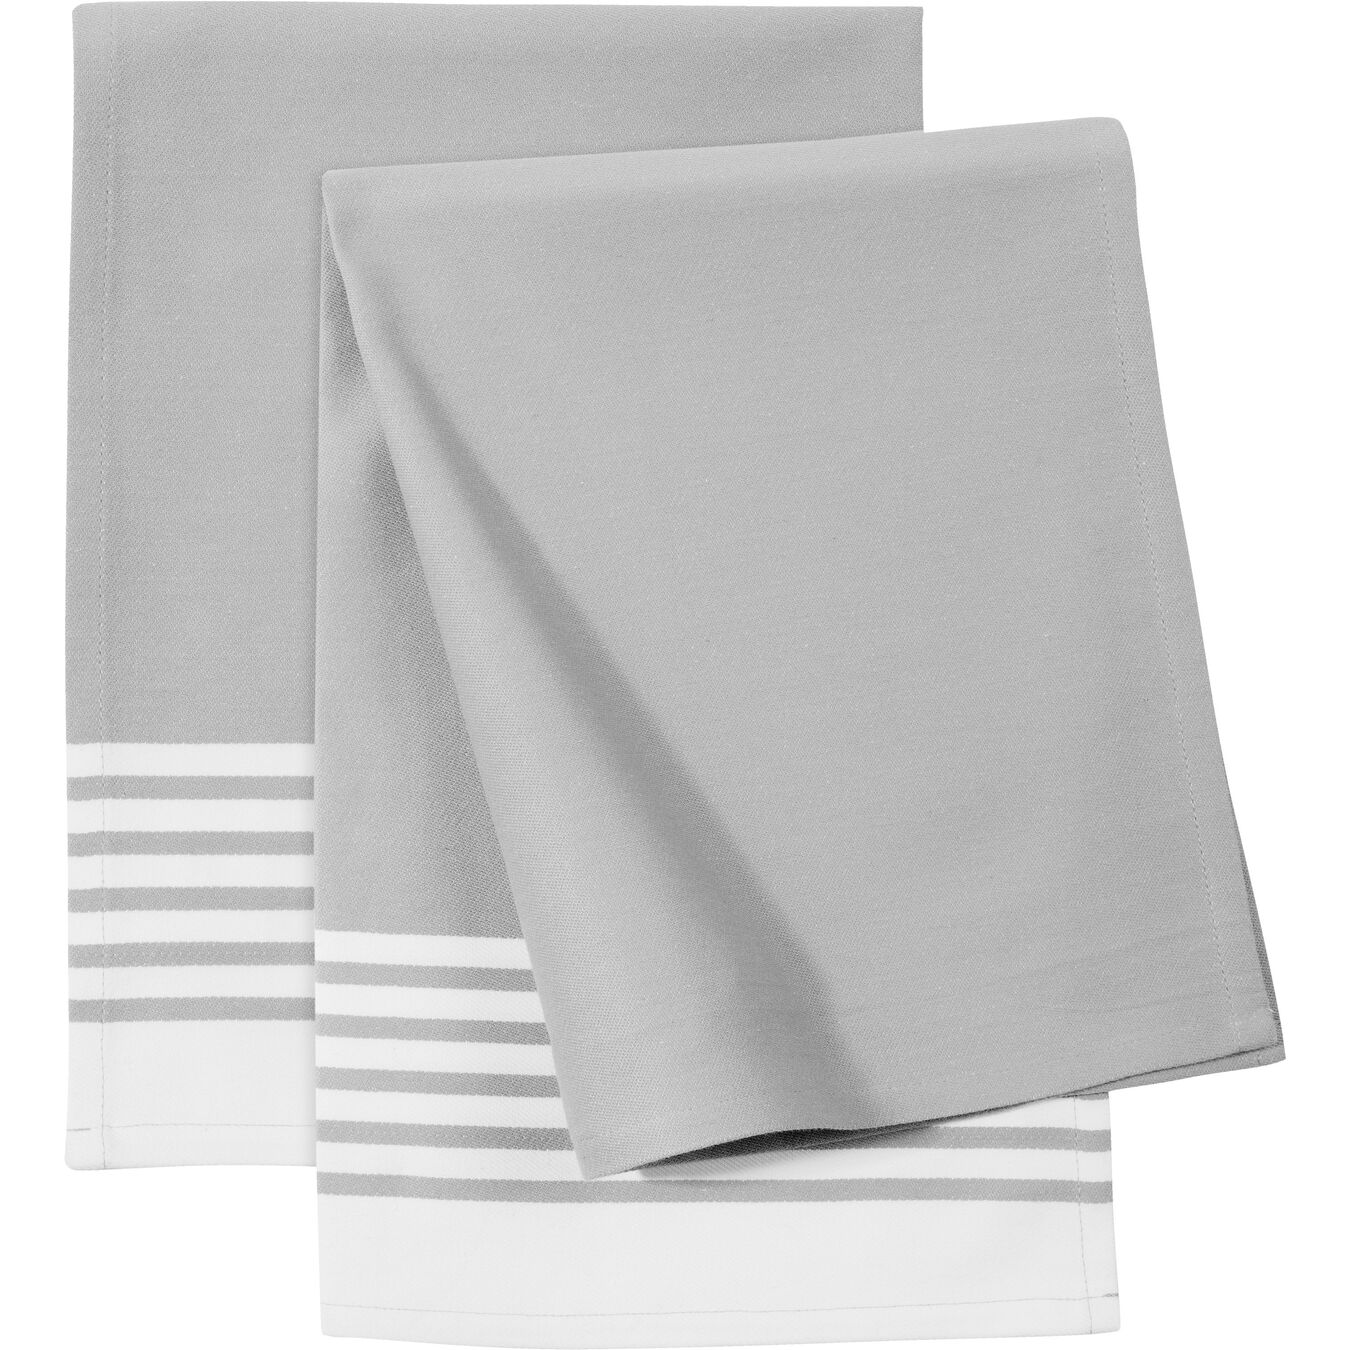 2-pcs Cotton Set de serviettes de cuisine à rayures, grey,,large 1